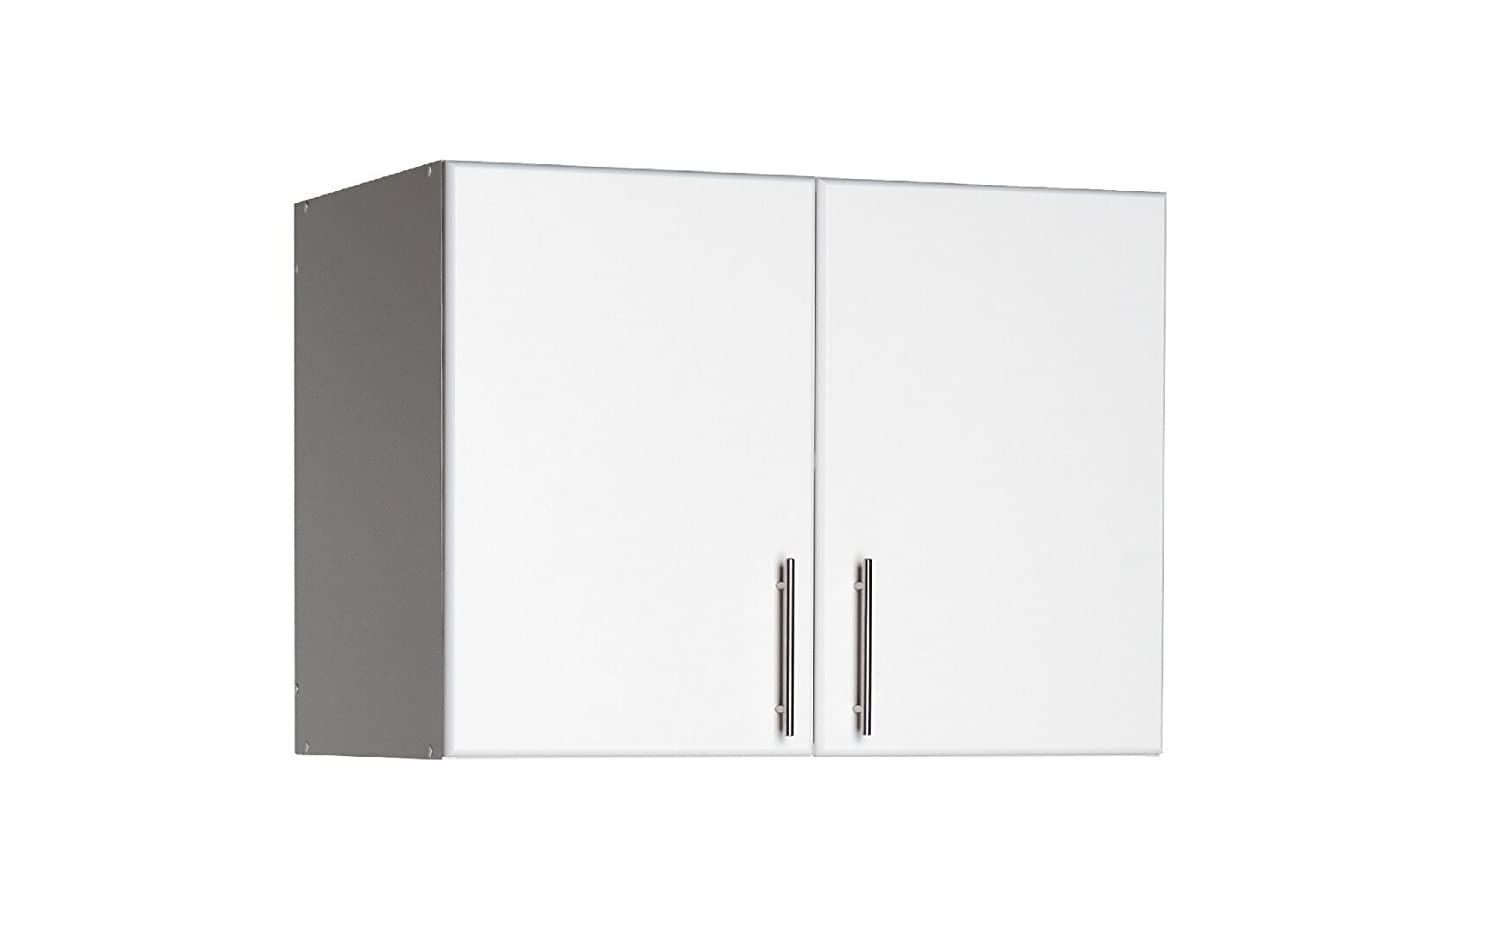 Amazon.com: Prepac WEW 3224   Elite Garage / Laundry Room Topper U0026 Wall  Cabinet With 2 Doors..: Kitchen U0026 Dining